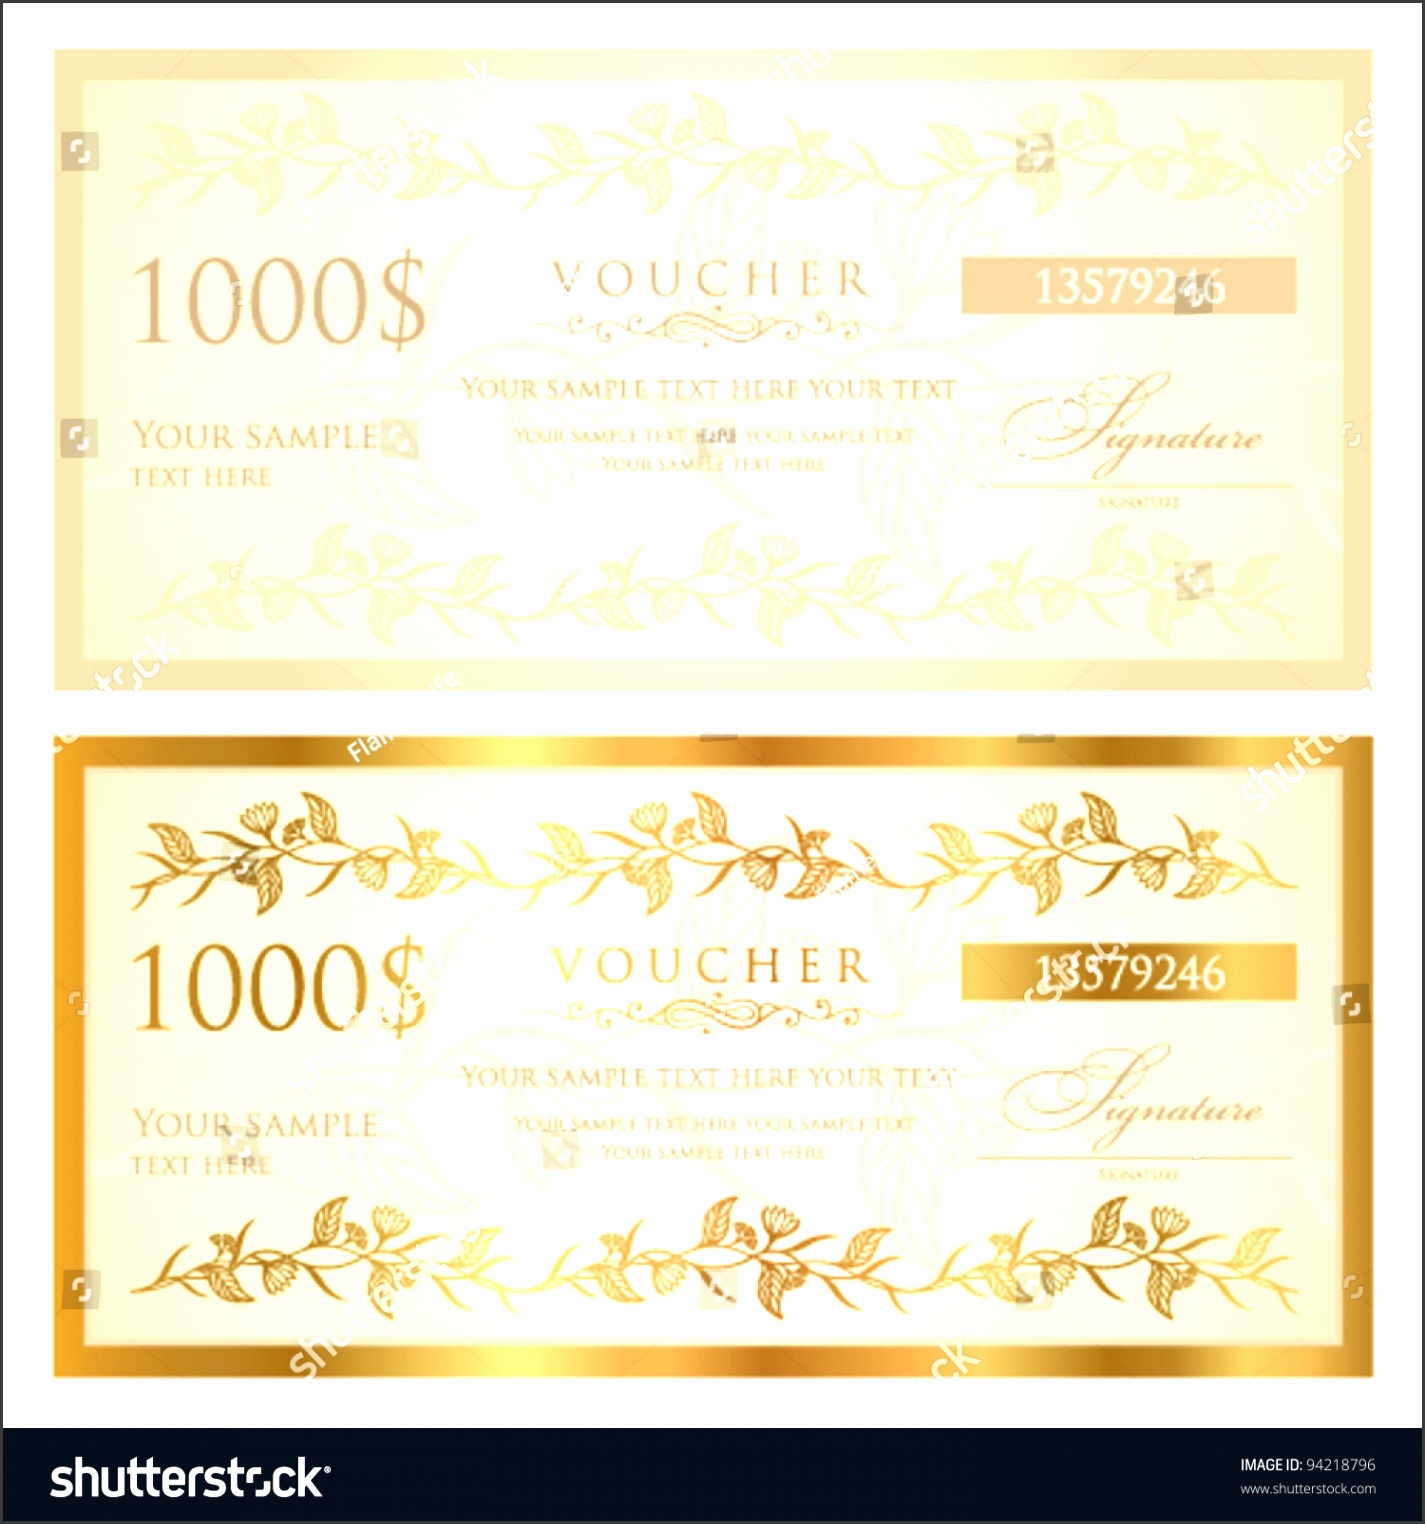 ticket voucher template alania enjoythese co